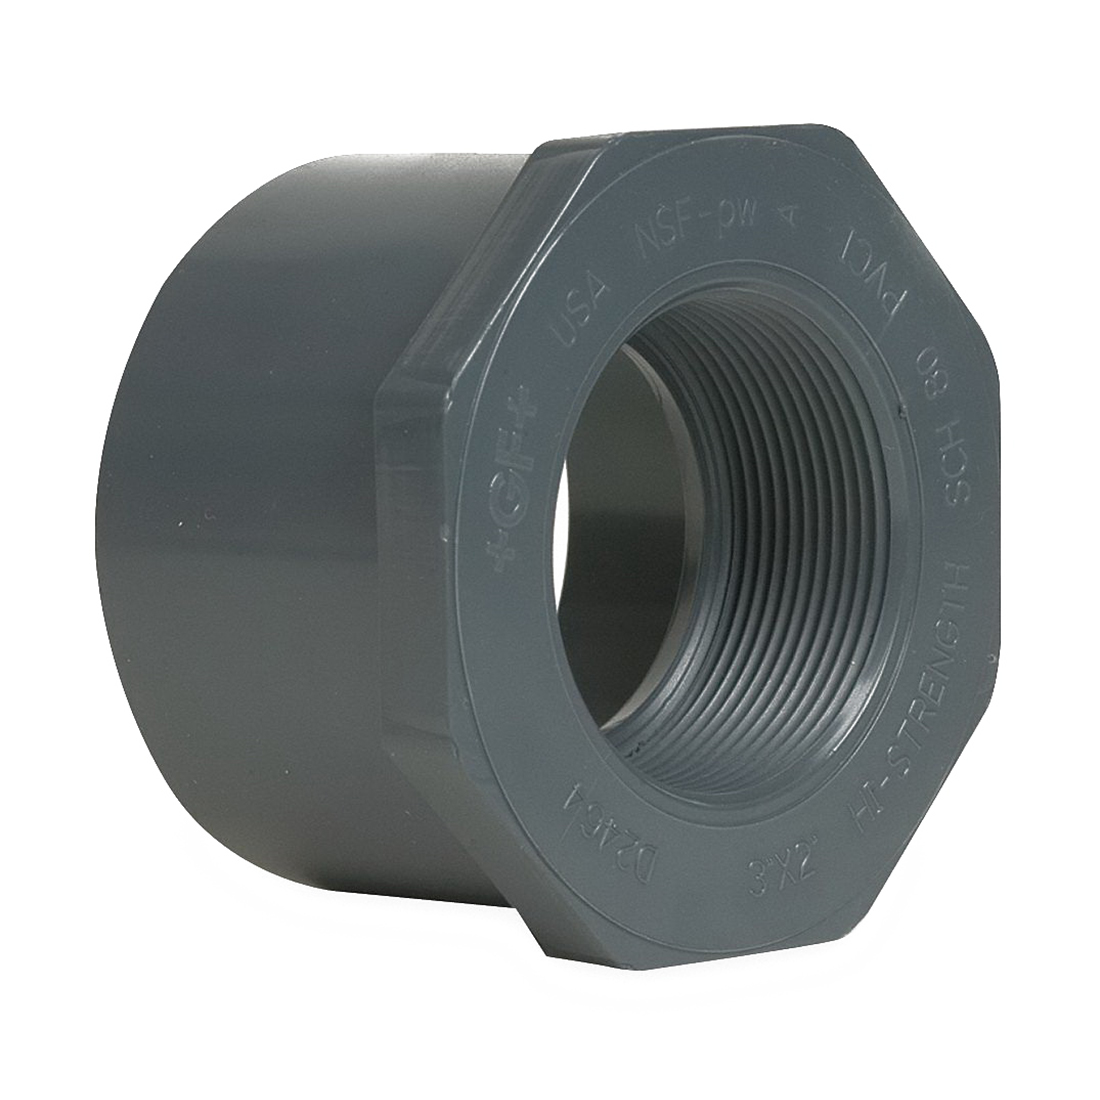 Gray PVC SCH 80 Flush Style Reducer Bushing, 2 in x 1-1/2 in, Spigot x FNPT